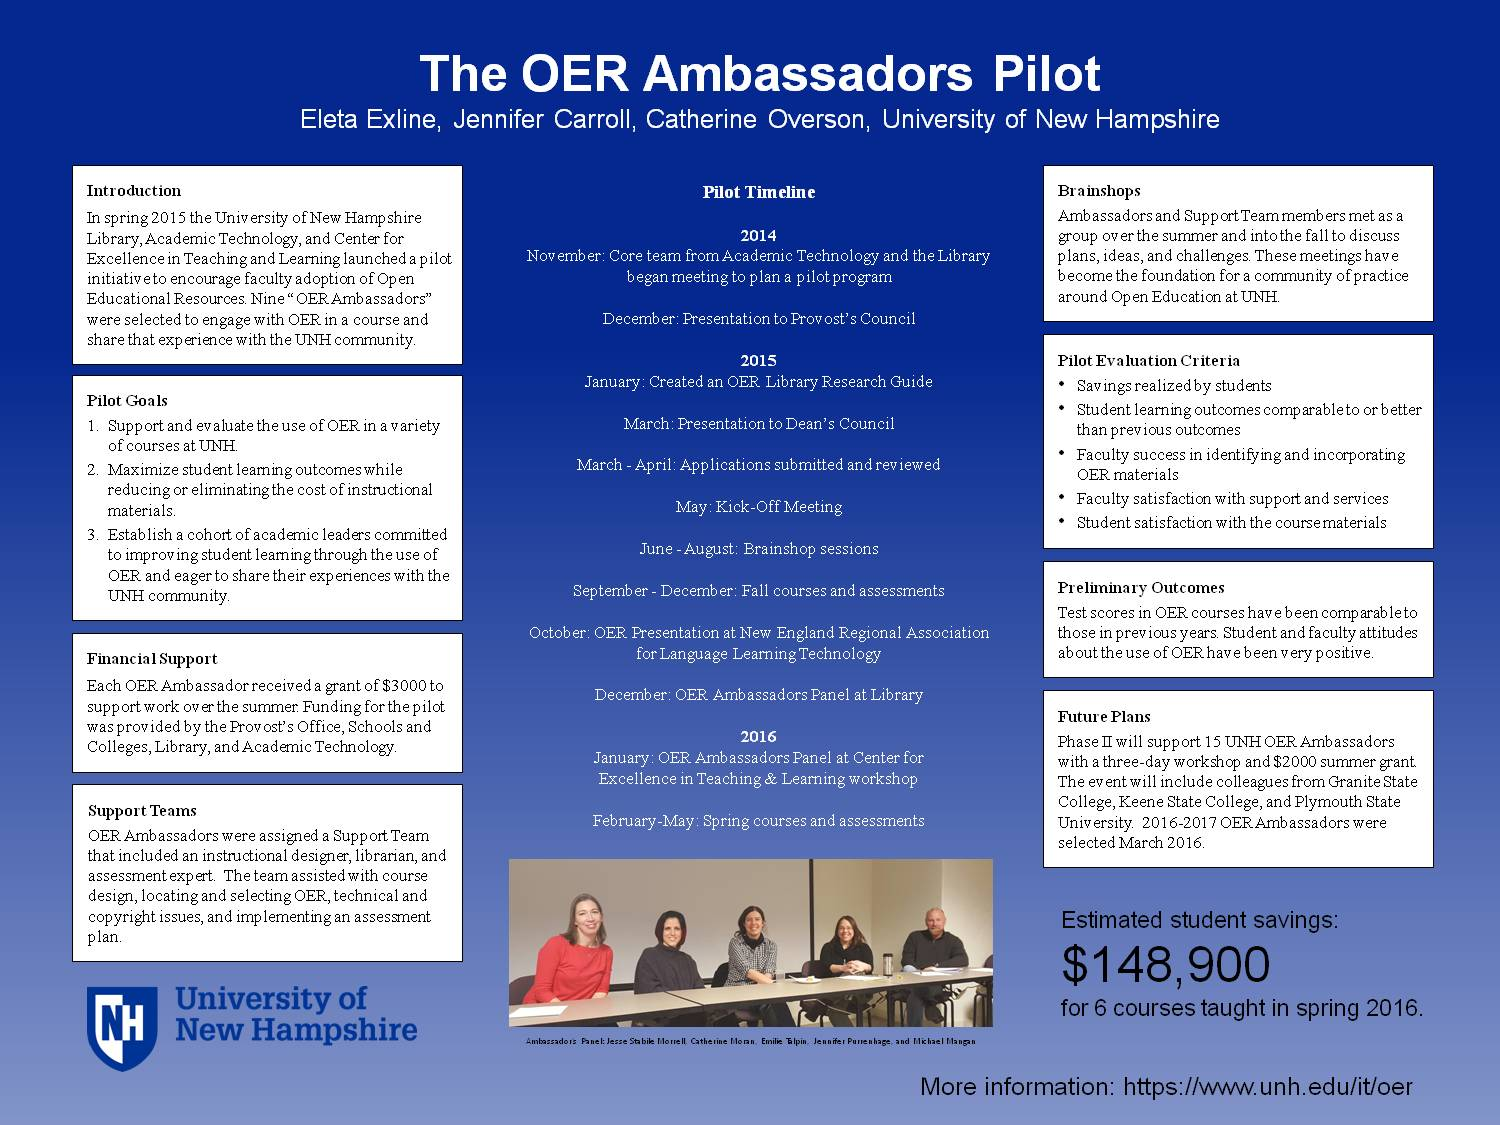 The Oer Ambassadors Pilot by eleta